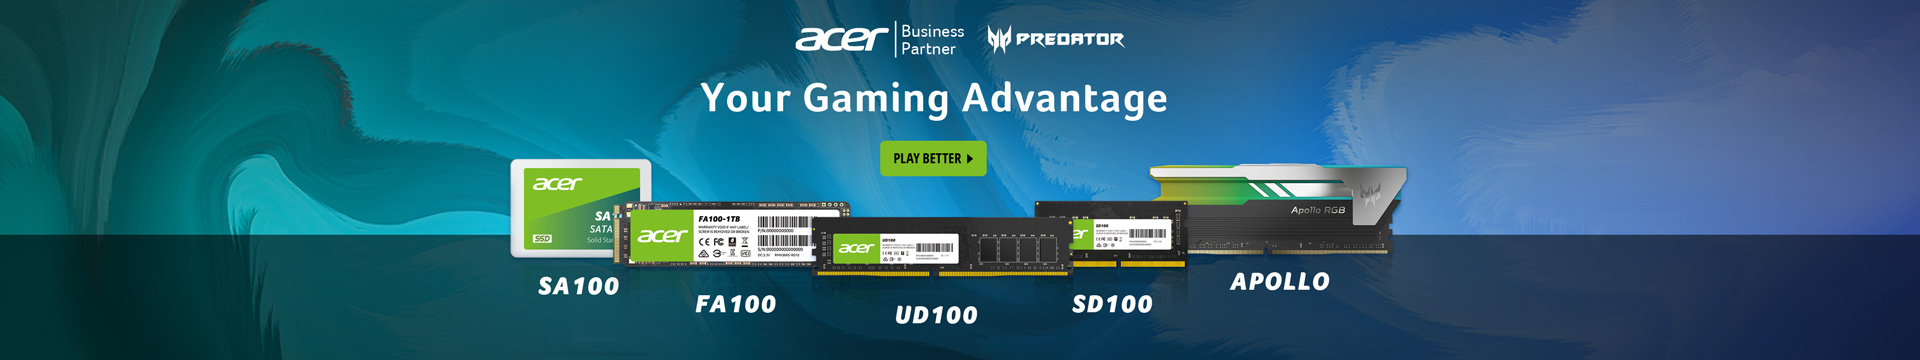 Your Gaming Advantage